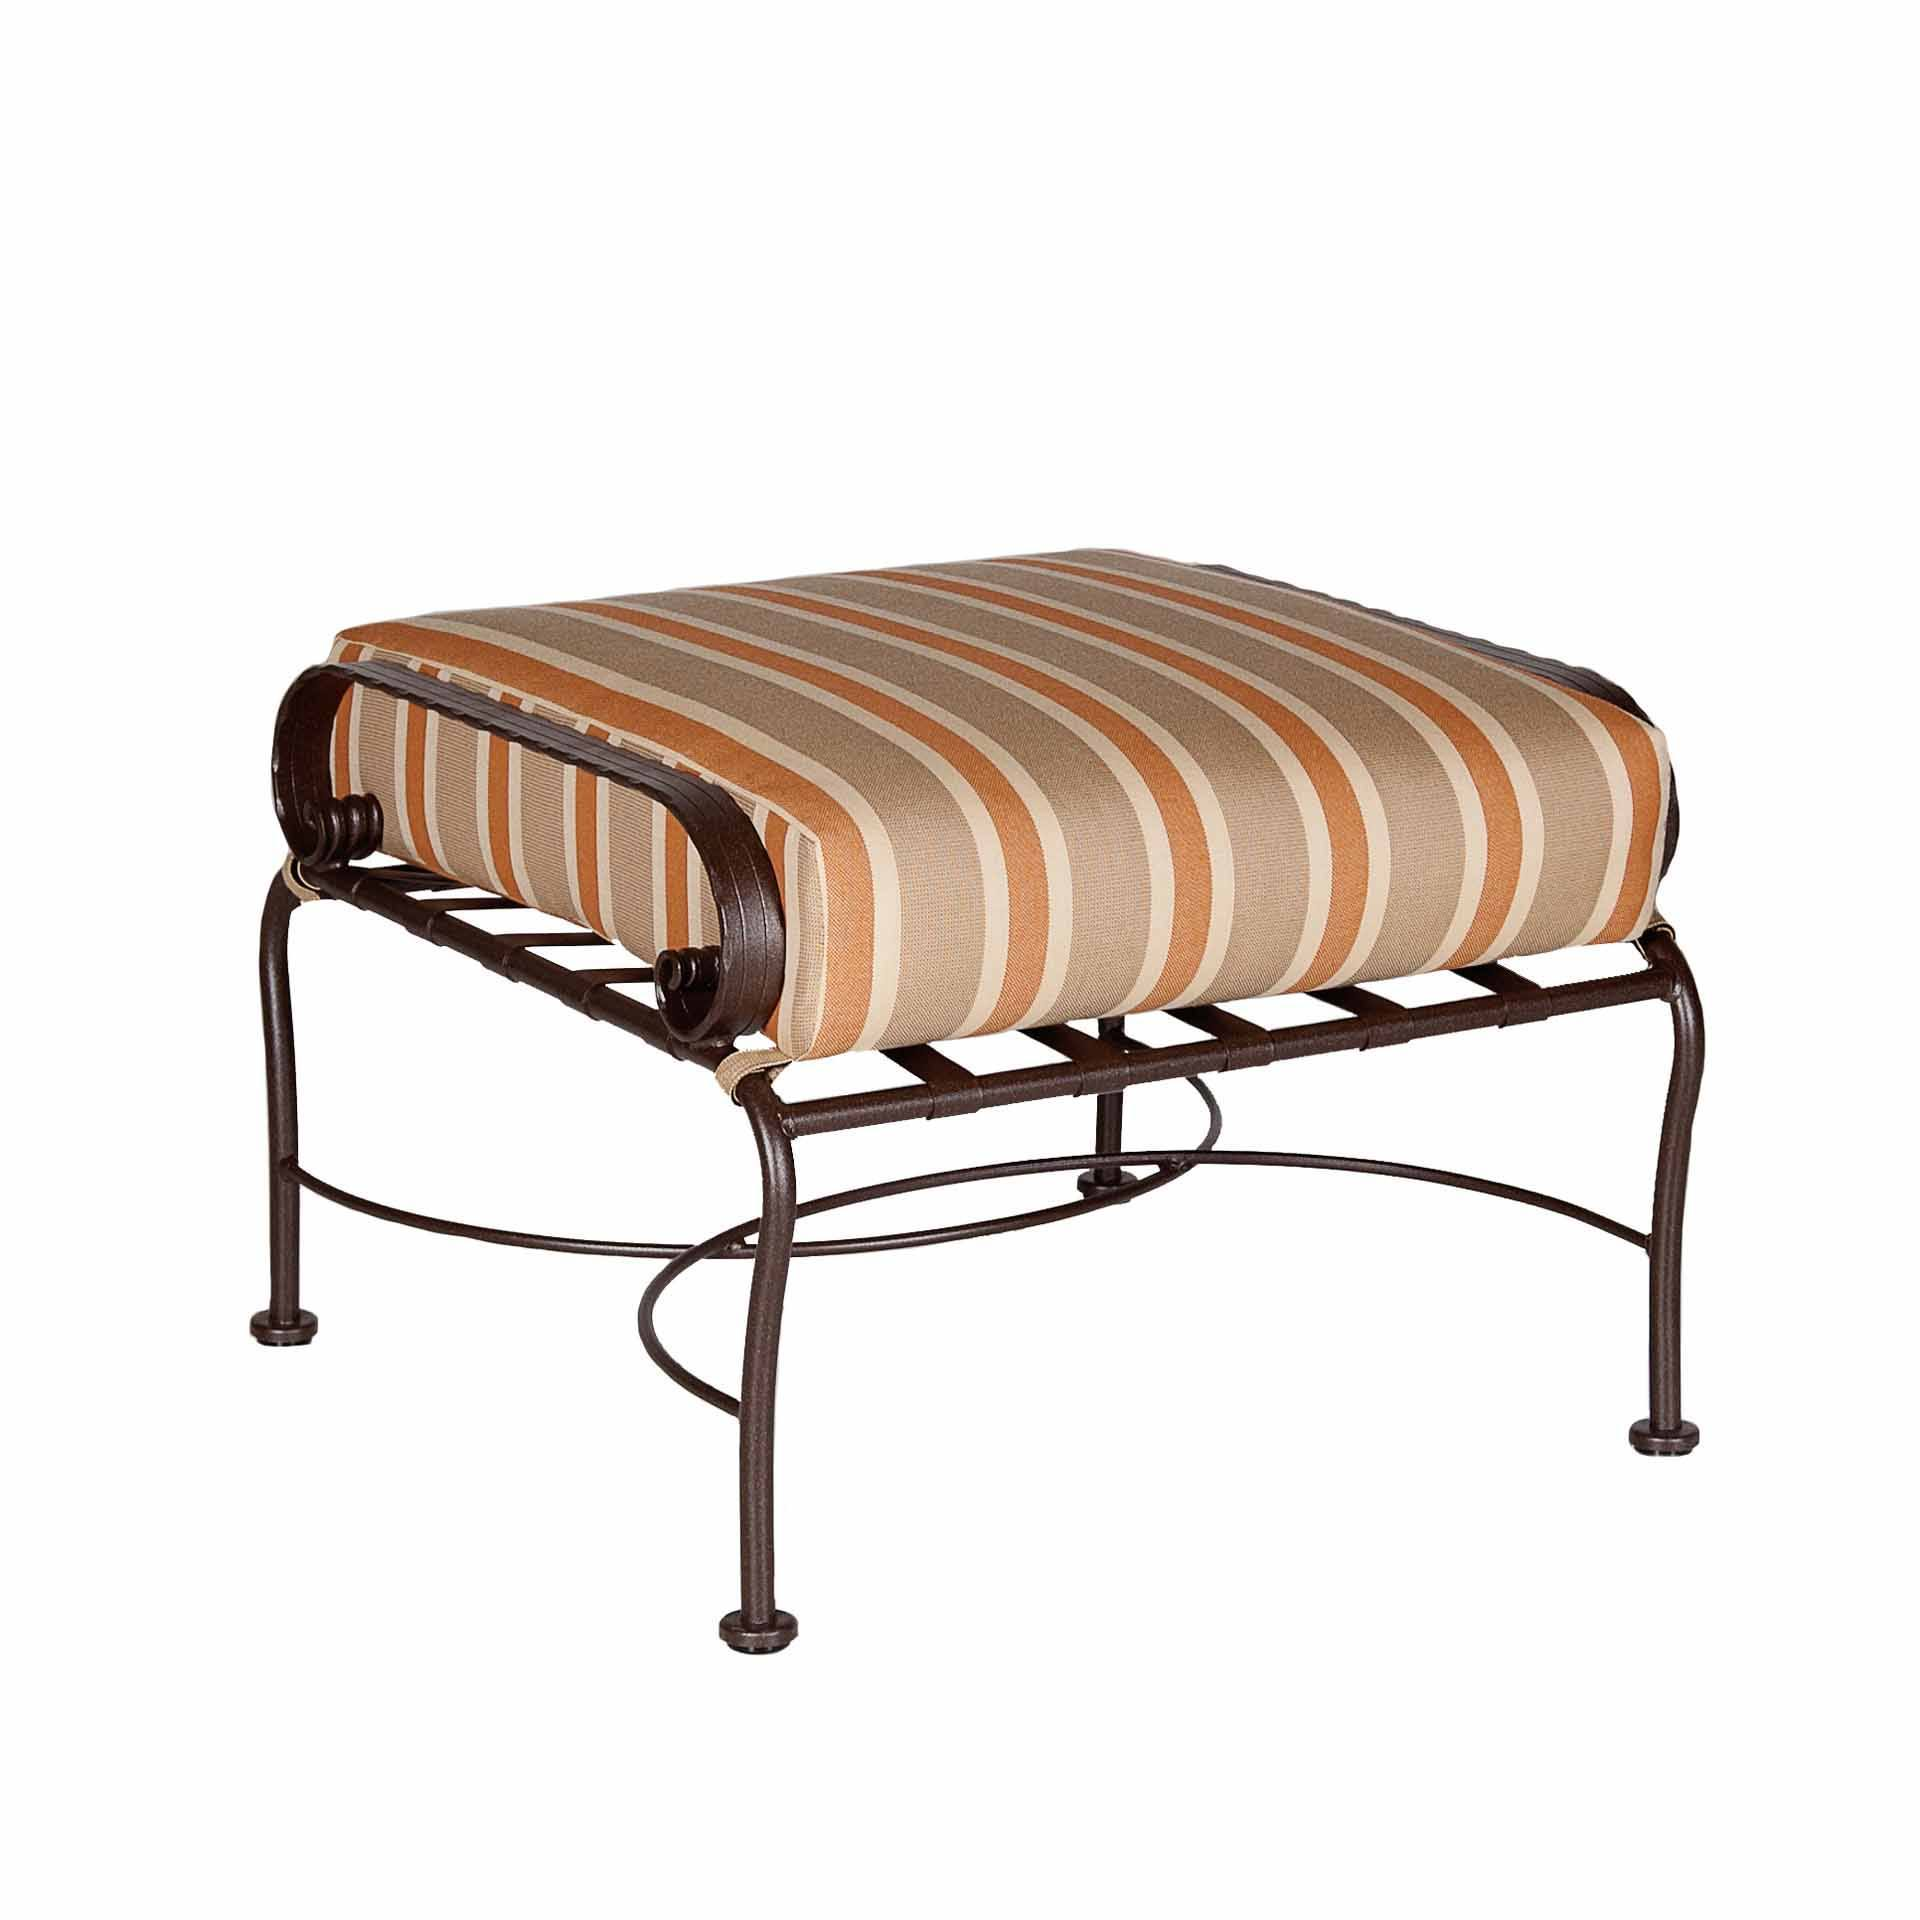 Ow Lee Classico Ottoman Leisure Living